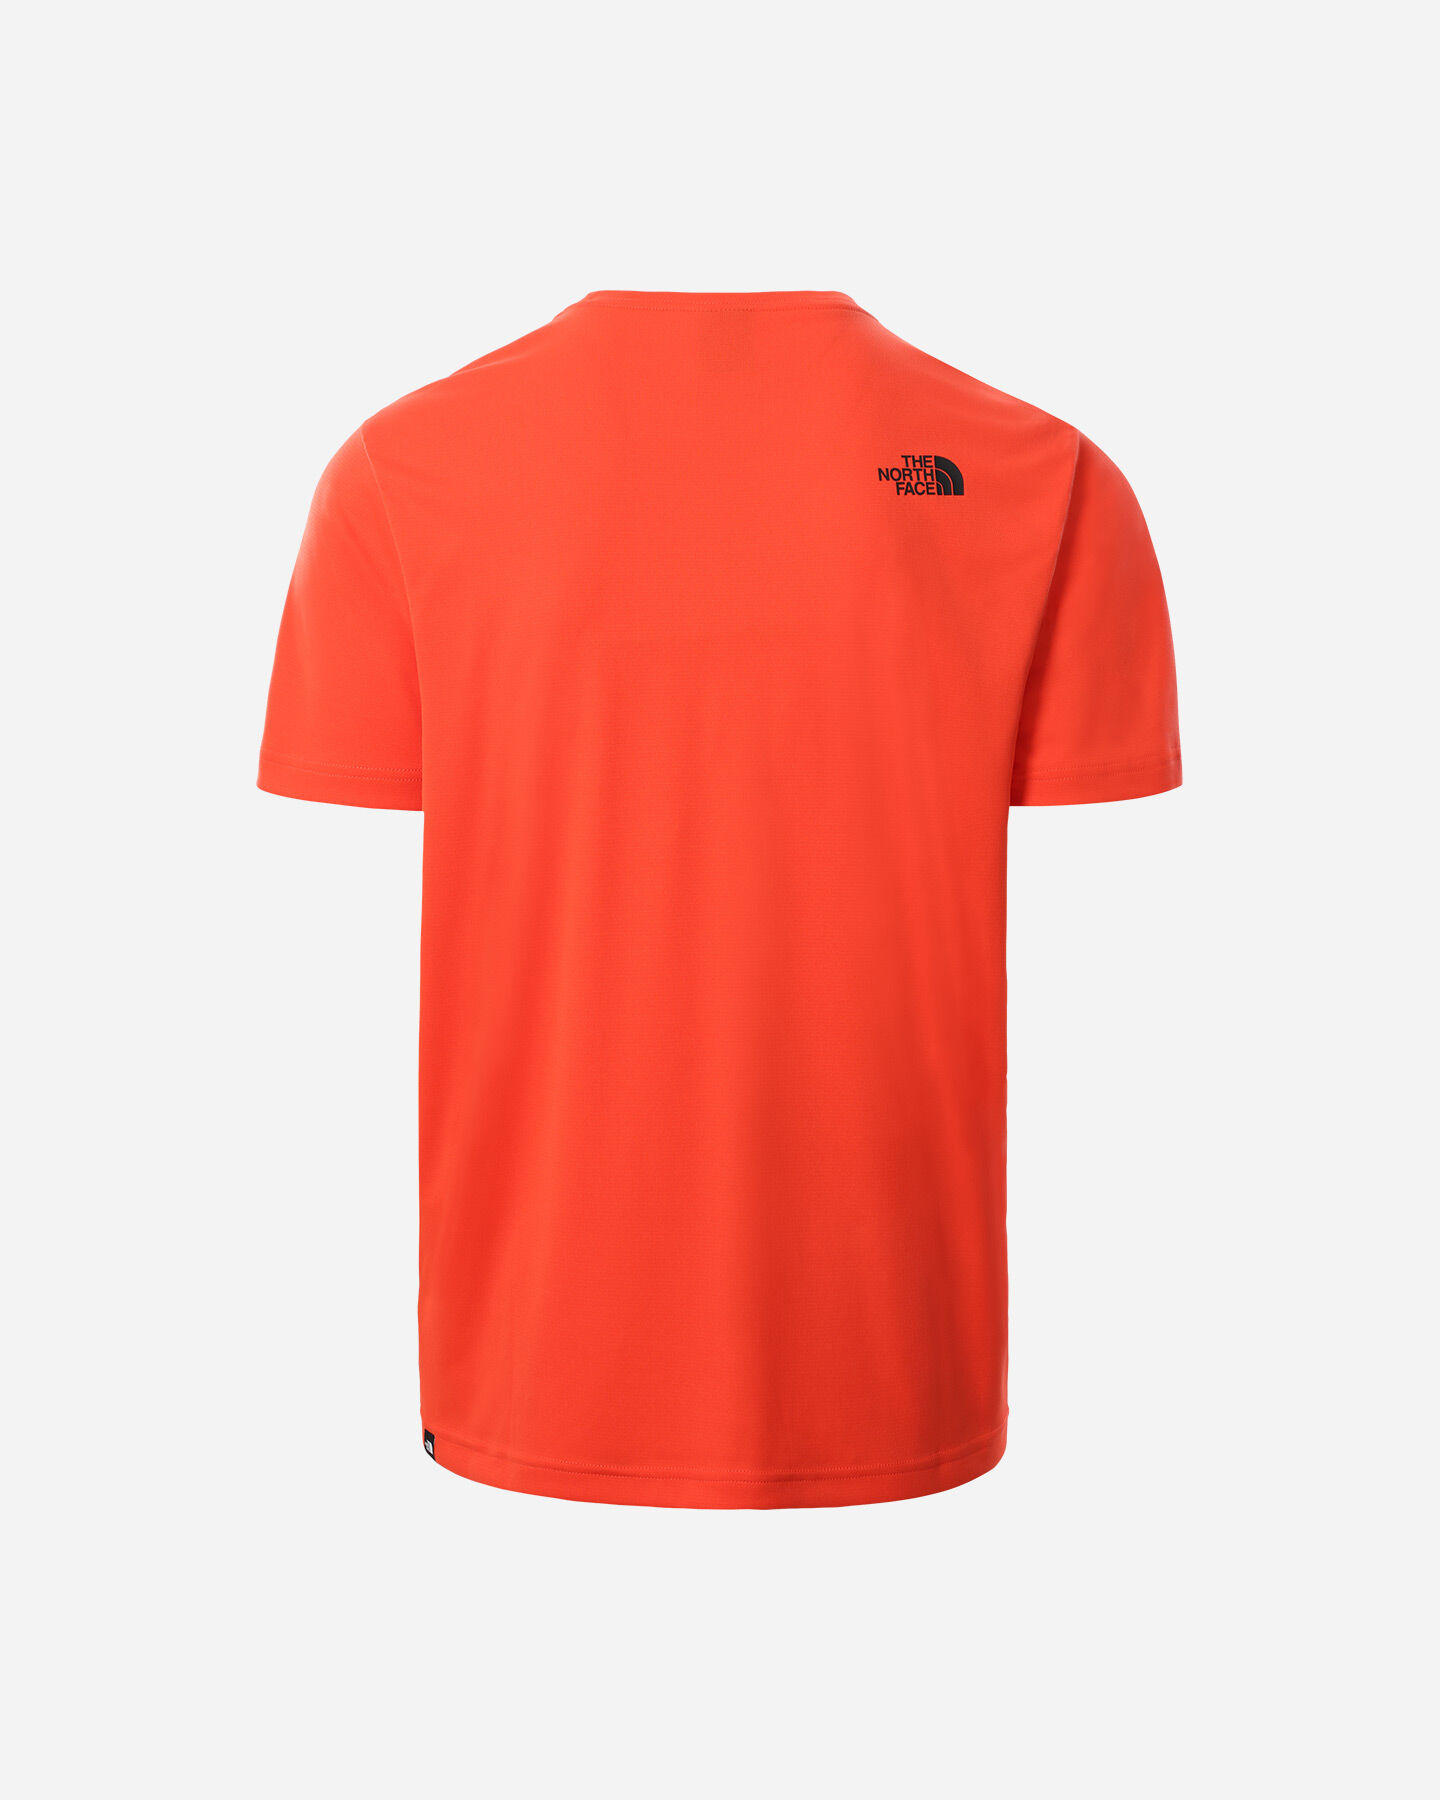 T-Shirt THE NORTH FACE EXTENT III M S5296477 scatto 1